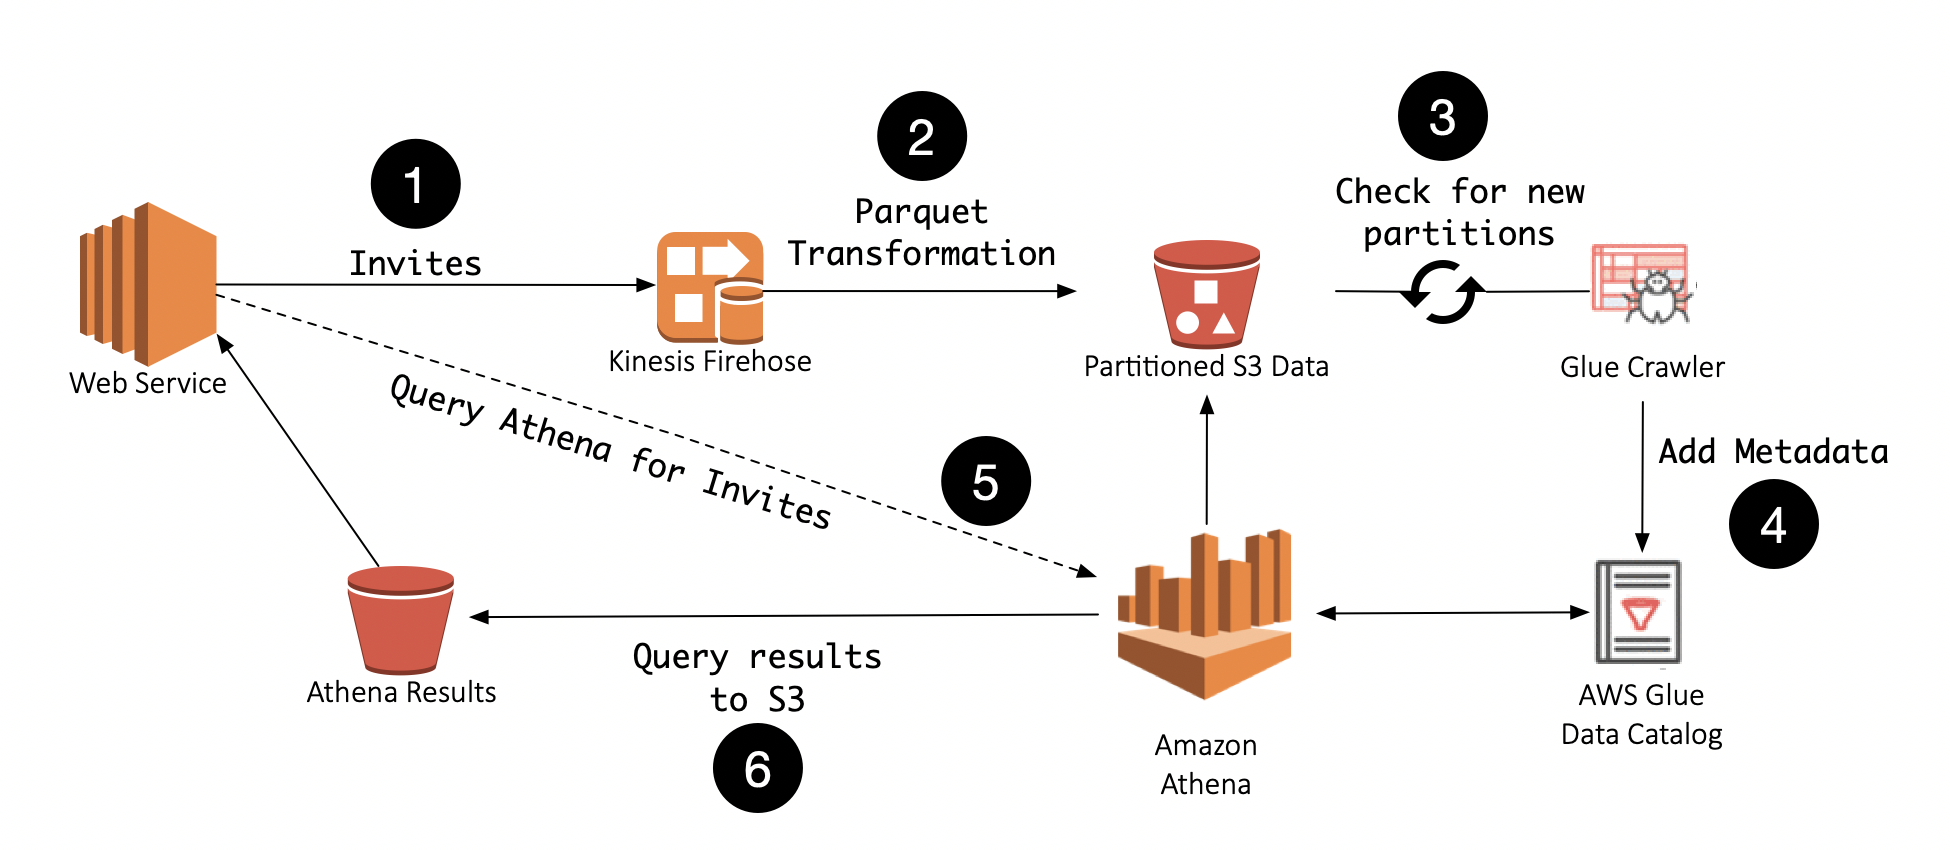 Moving Faster With AWS by Creating an Event Stream Database